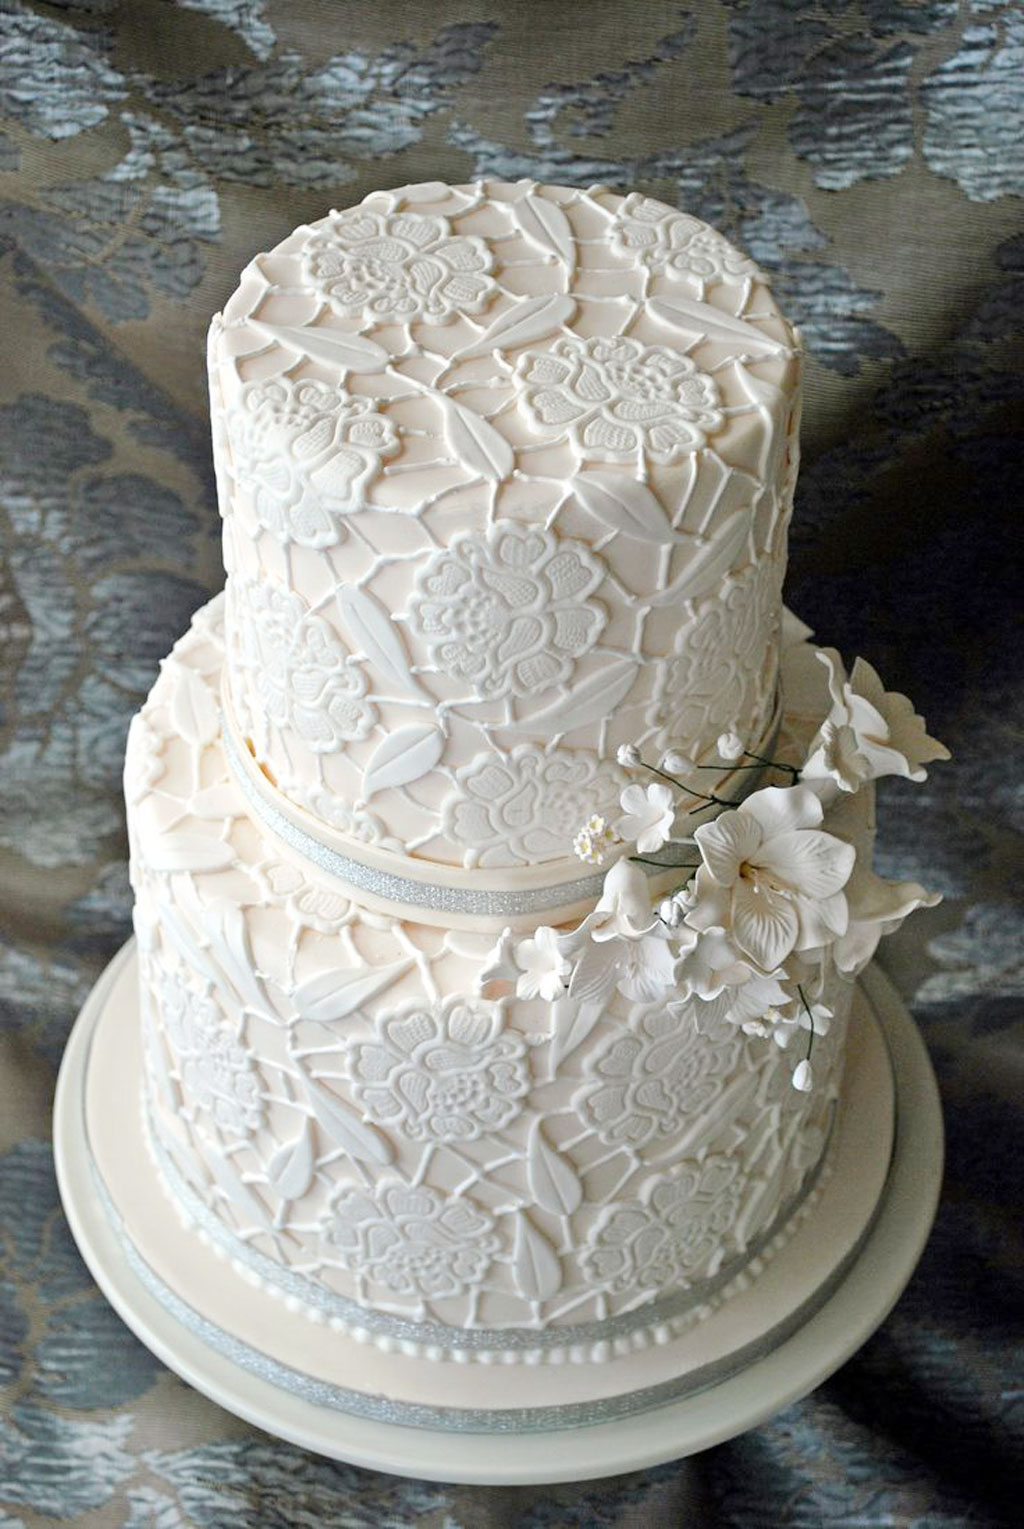 Double layer wedding cake pic 6 wedding cake cake ideas for Wedding cake layer